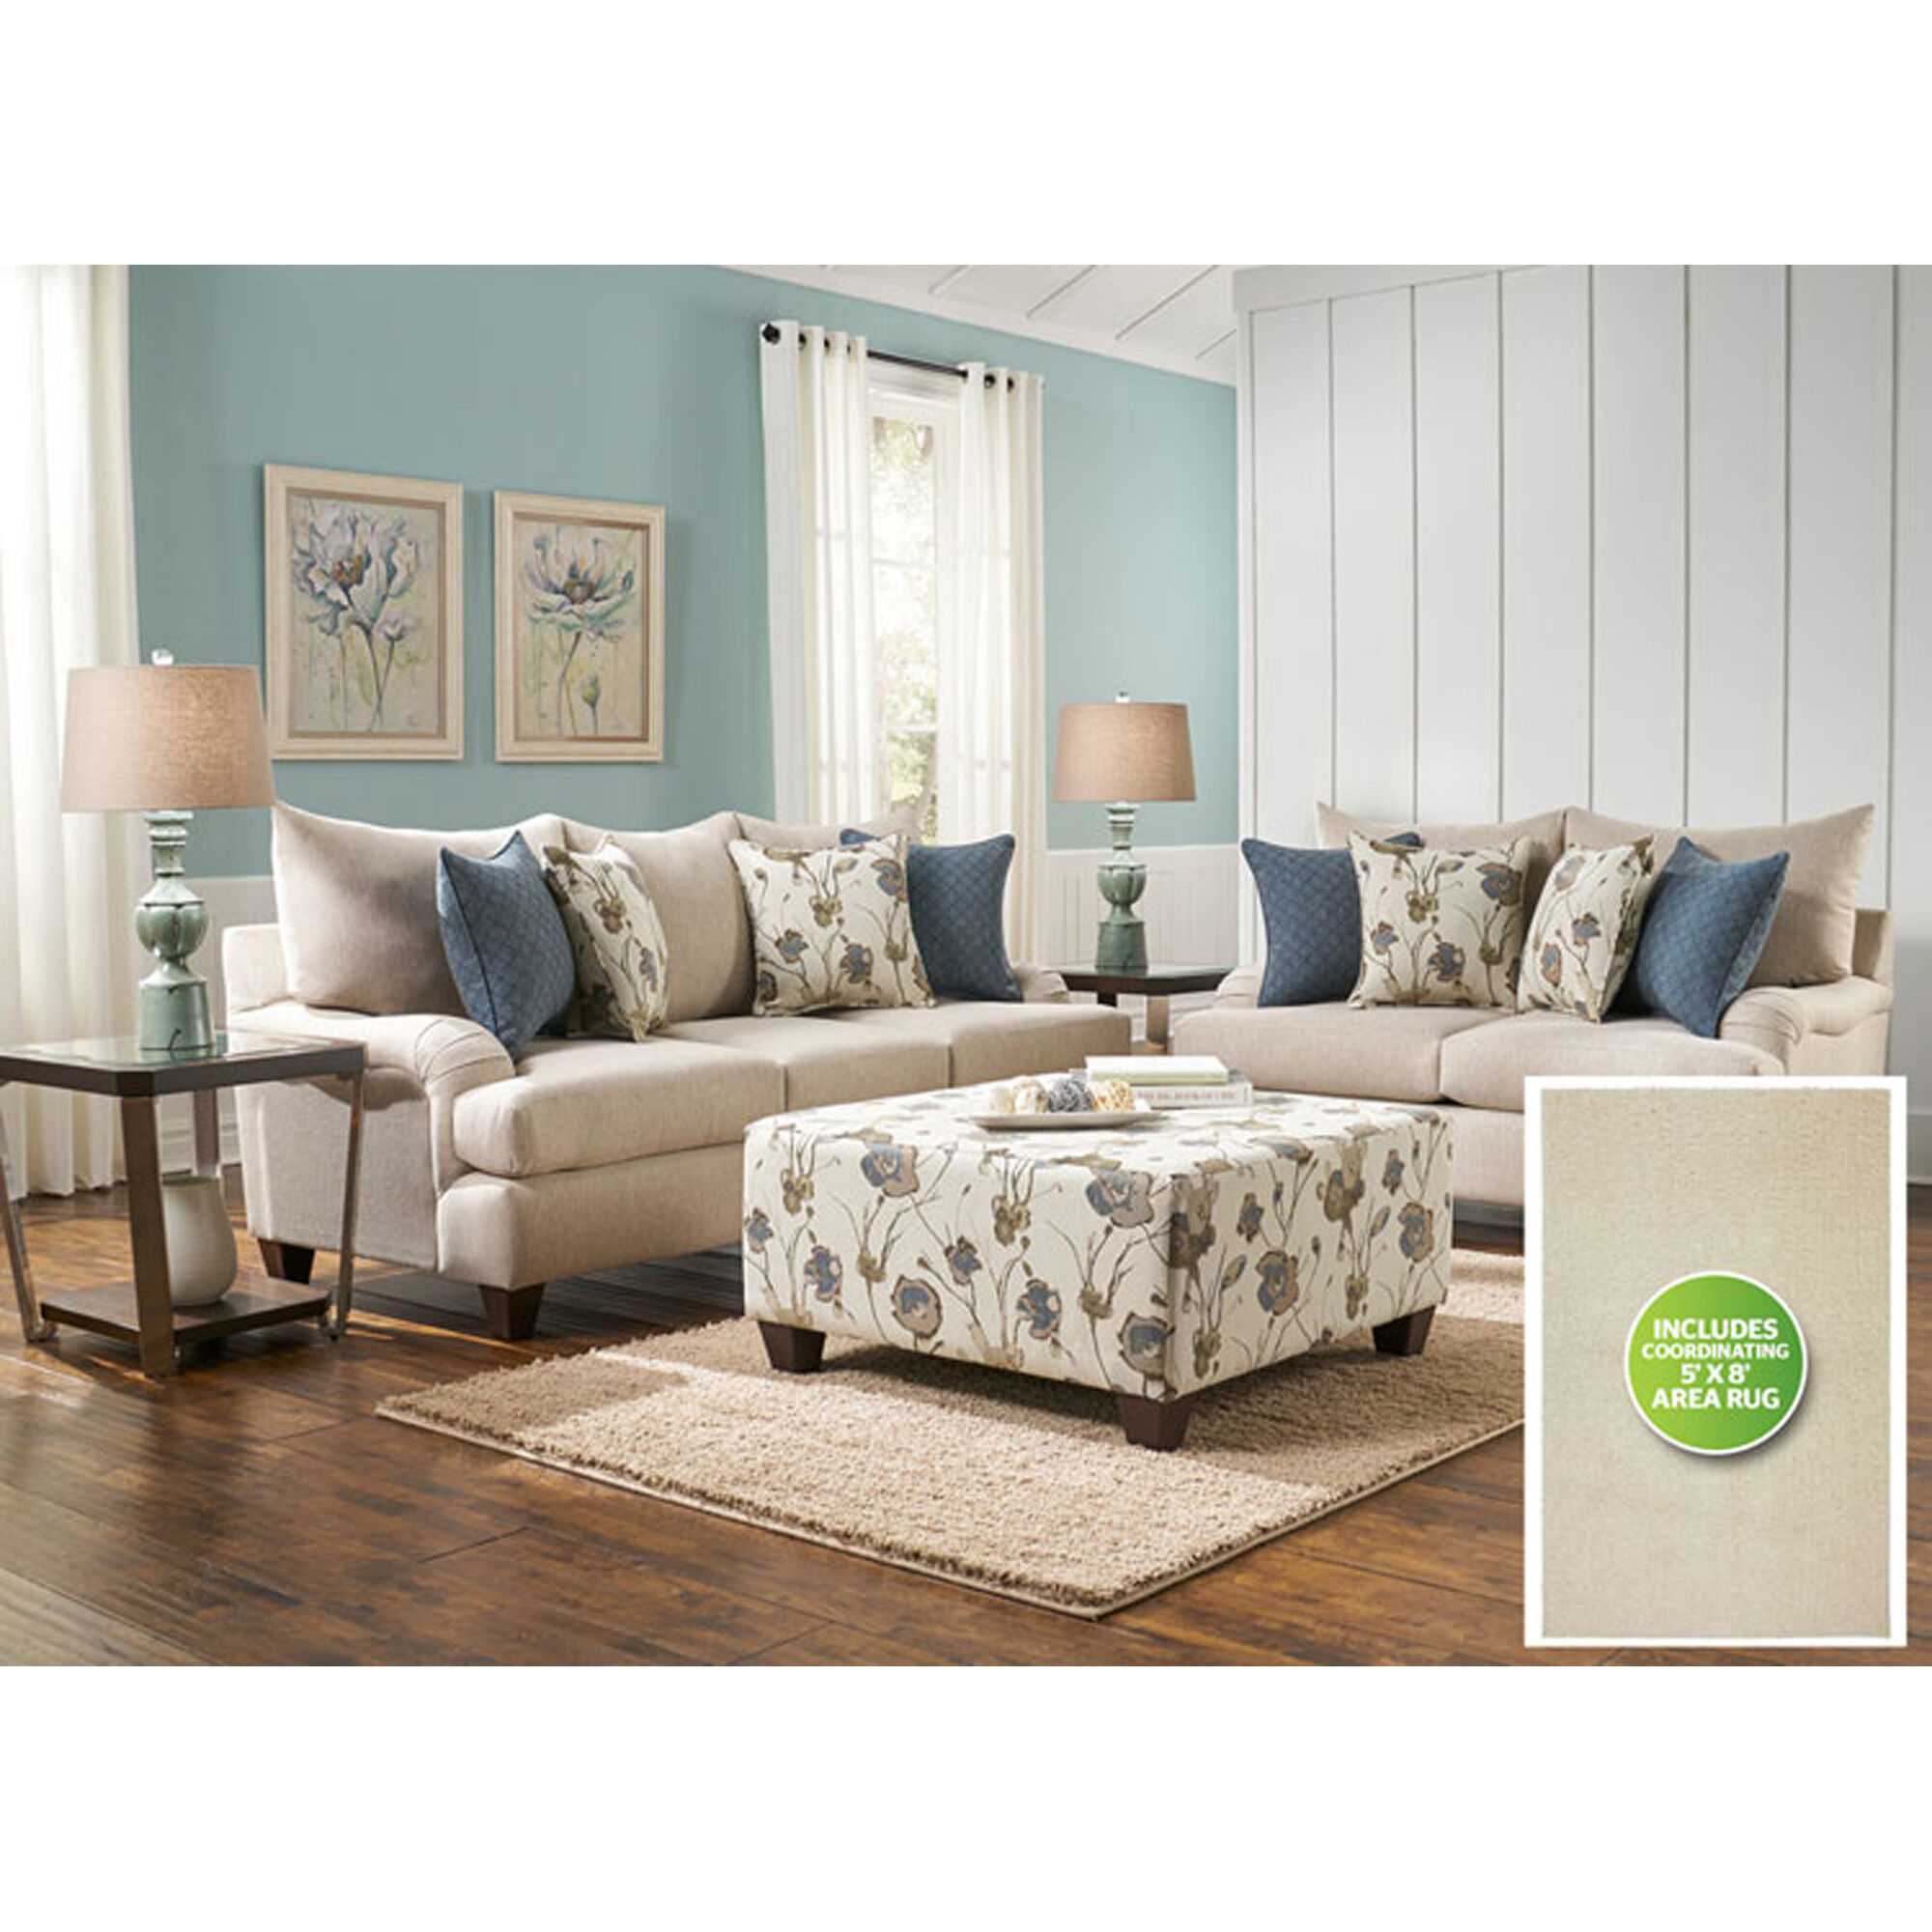 8 Piece Vogue Living Room Collection